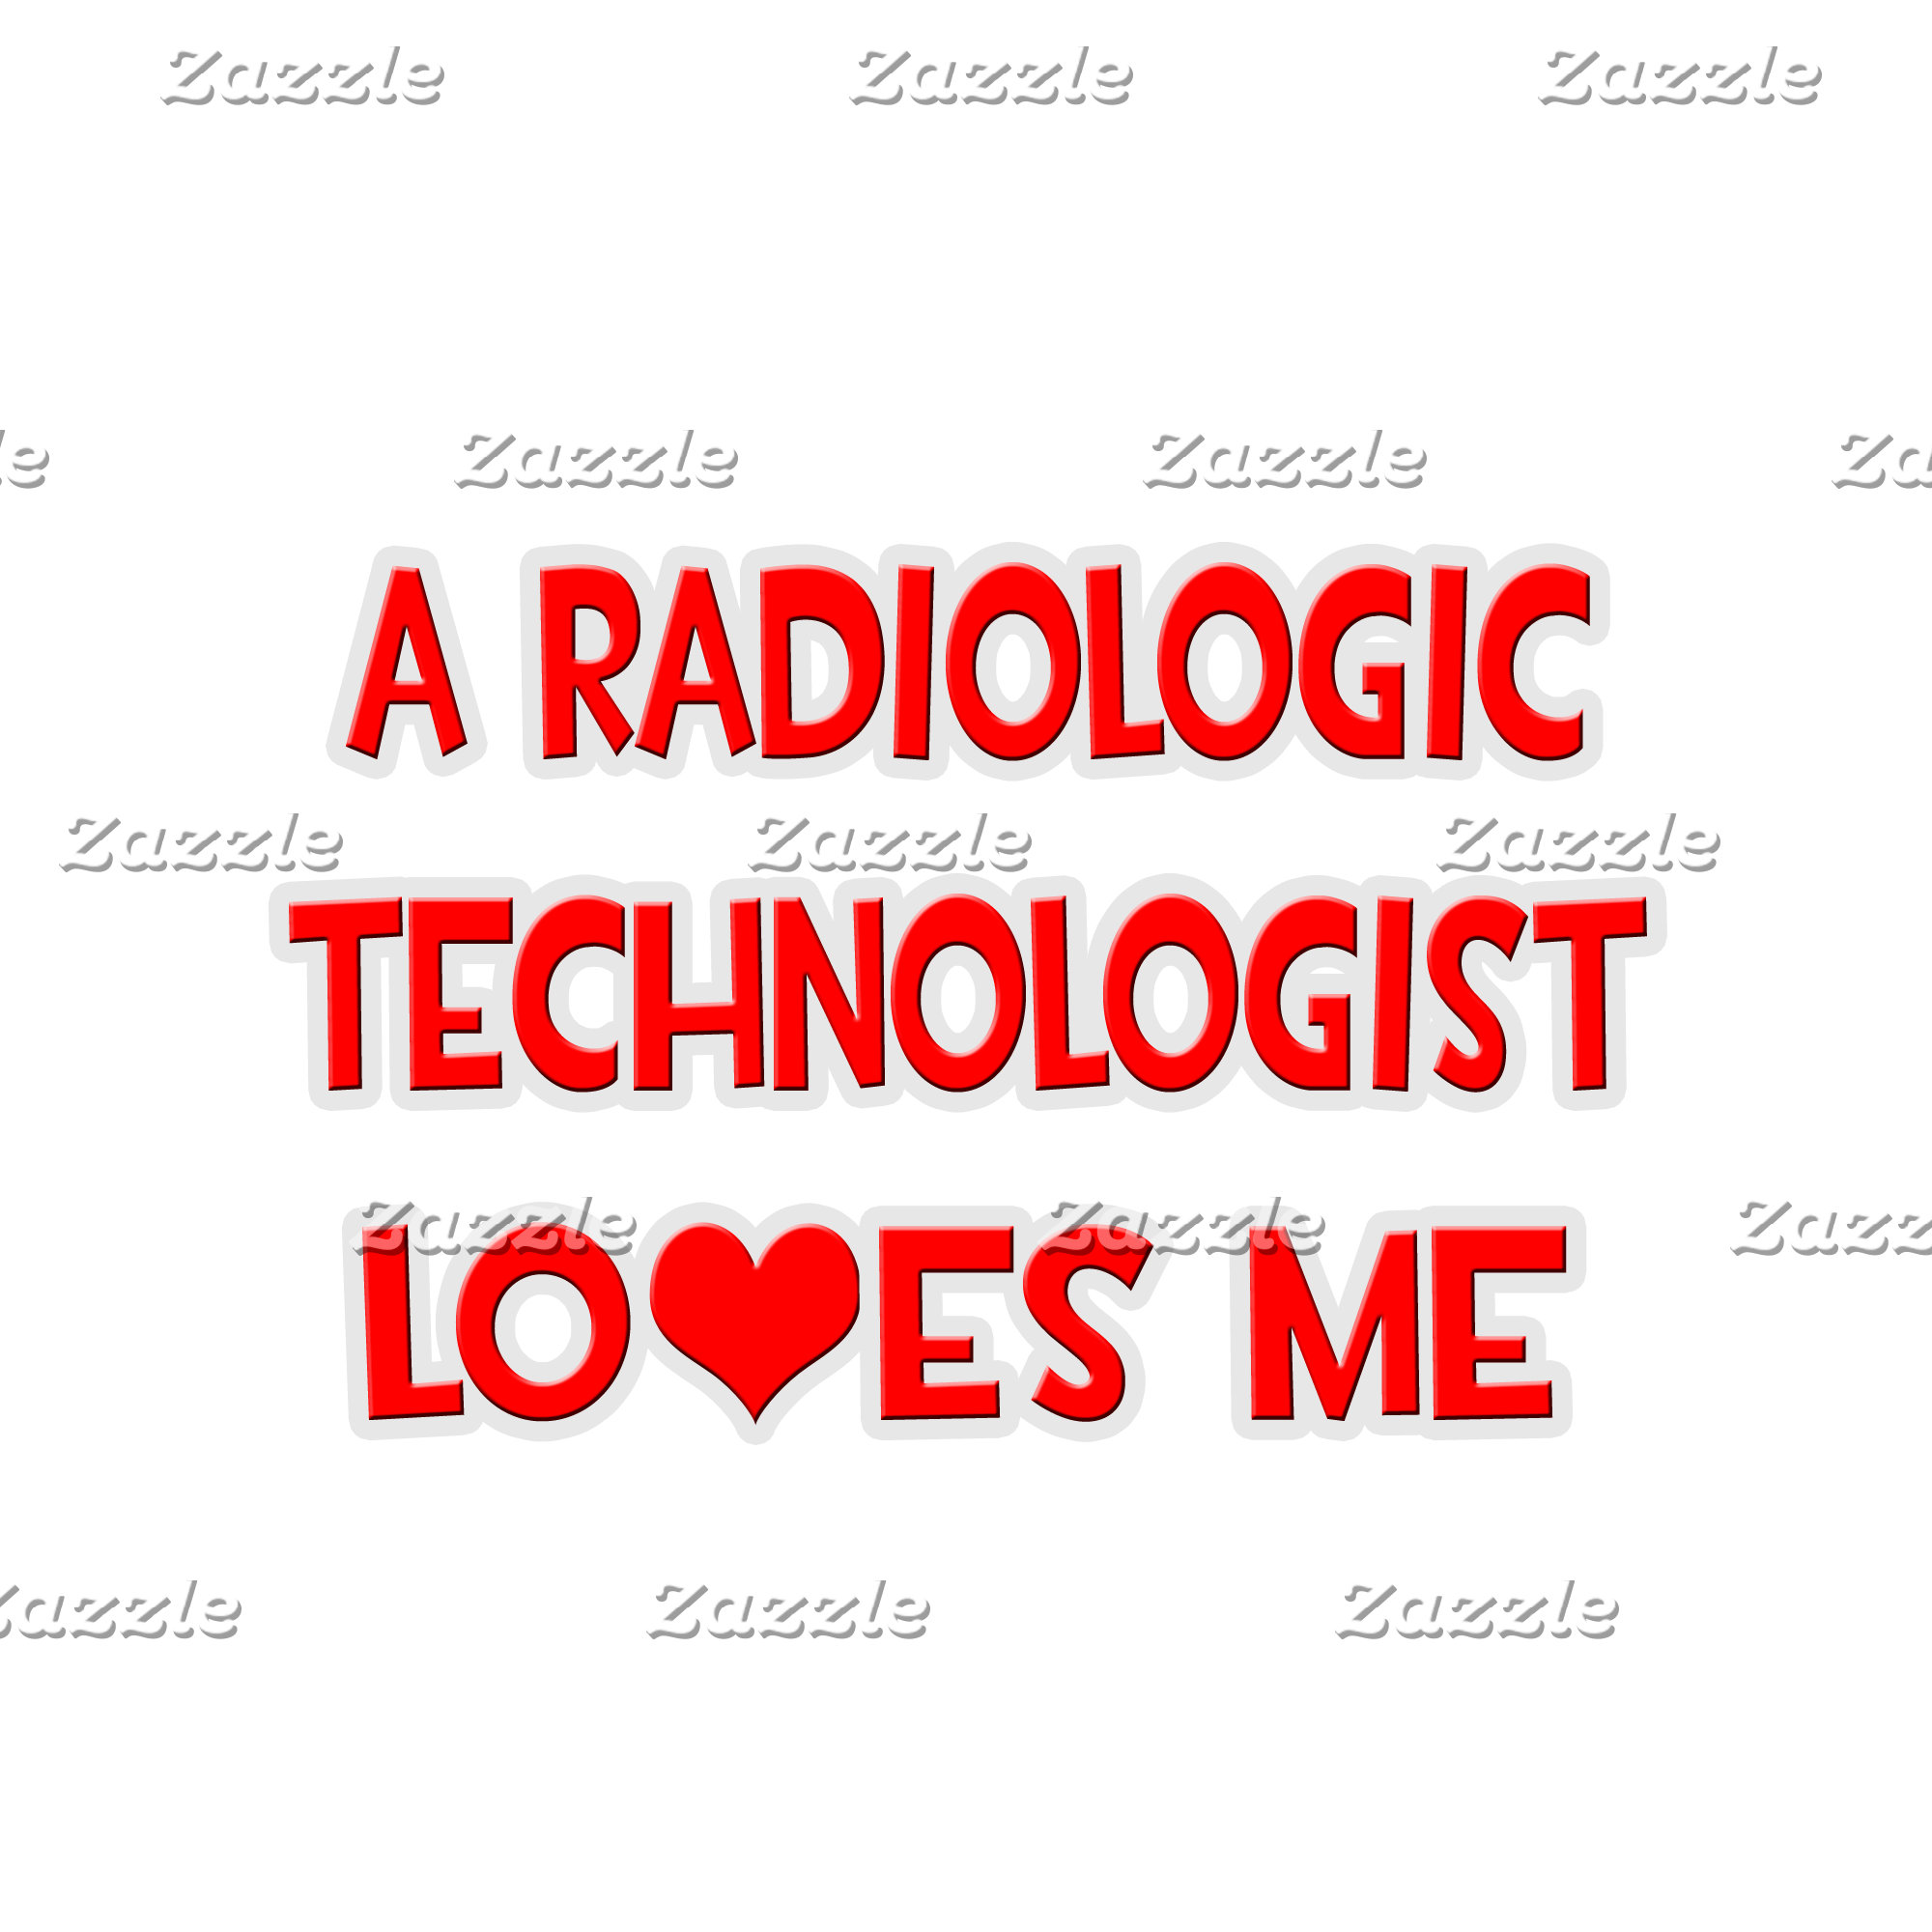 A Radiologic Technologist Loves Me